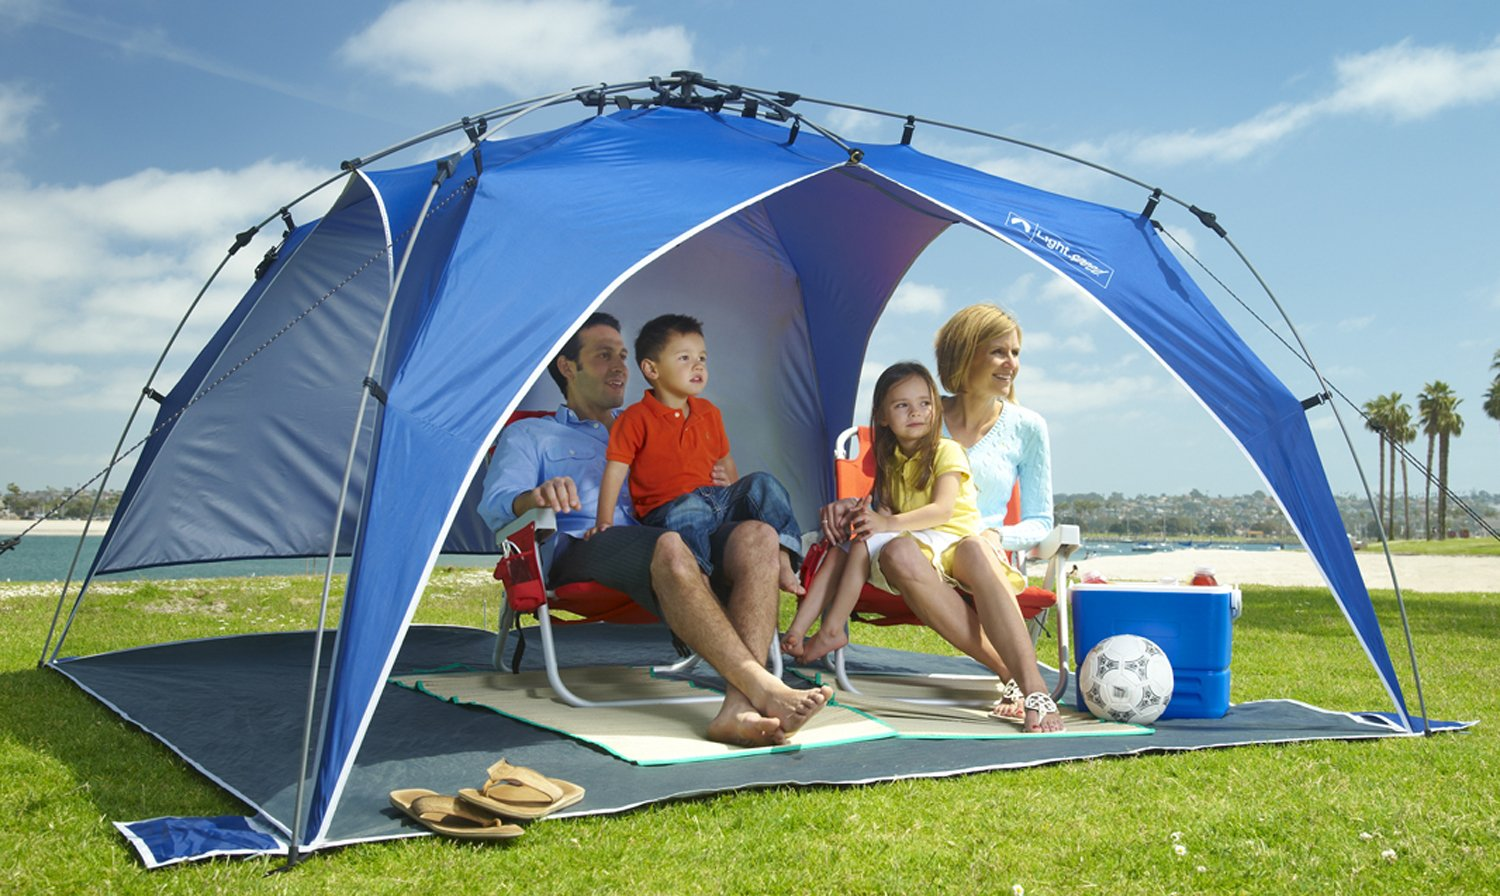 & Top 10 Best Beach Tents for Sun Shelter 2018-2019 on Flipboard